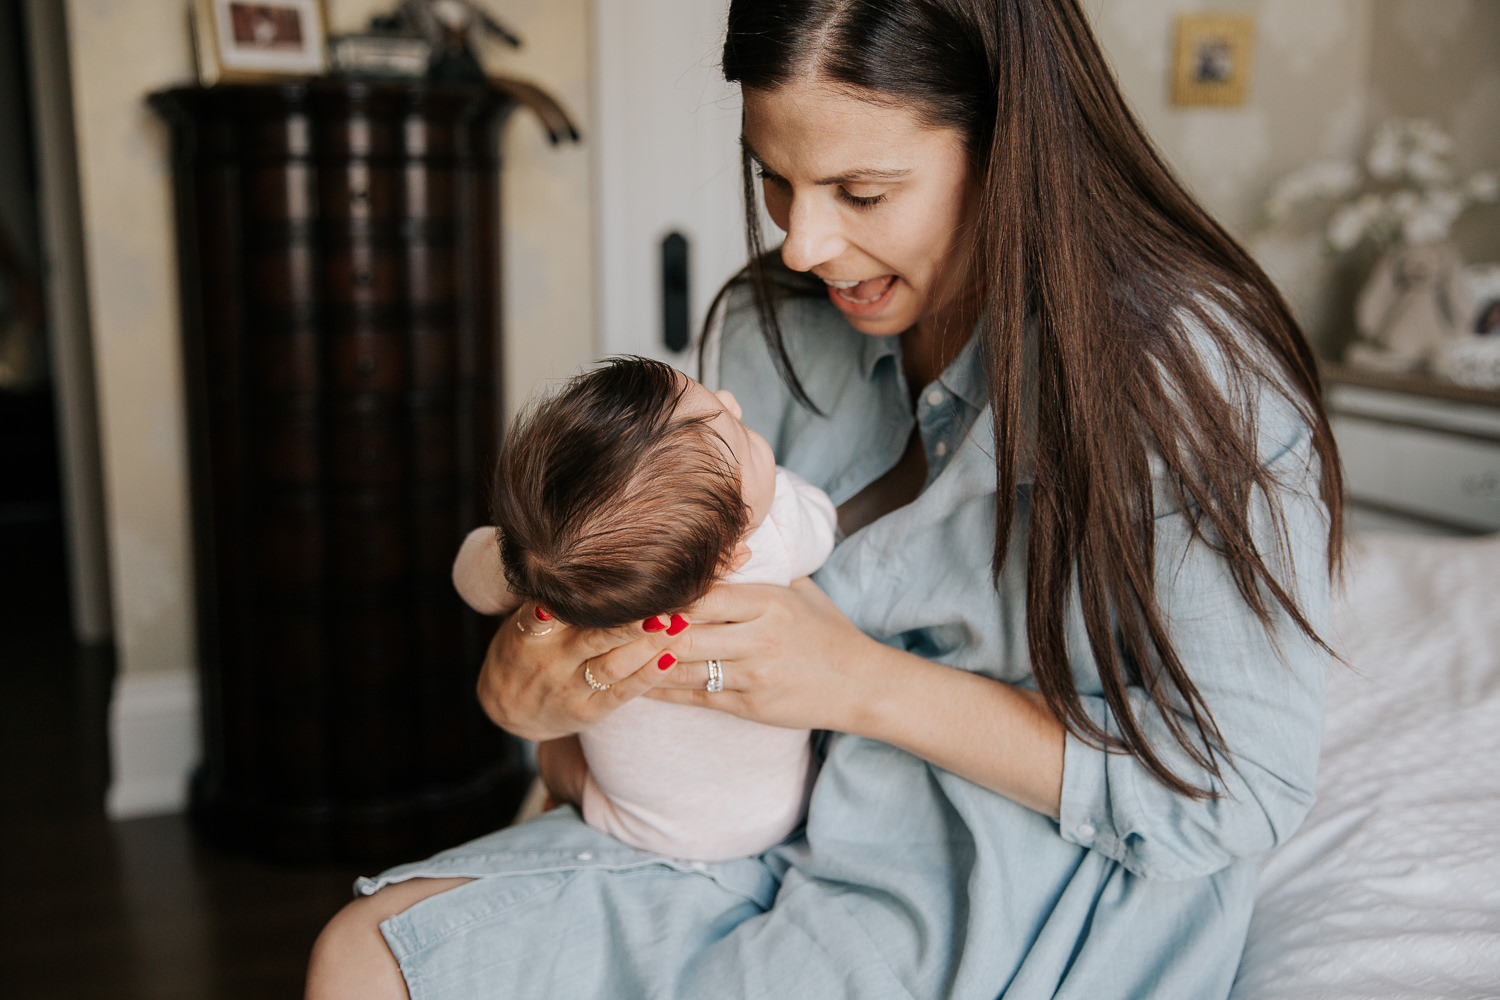 first time mother with long brunette hairin blue chambray dress sitting on master bed, smiling at 2 month old baby girl in pink onesie her arms - Markham In-Home Photos